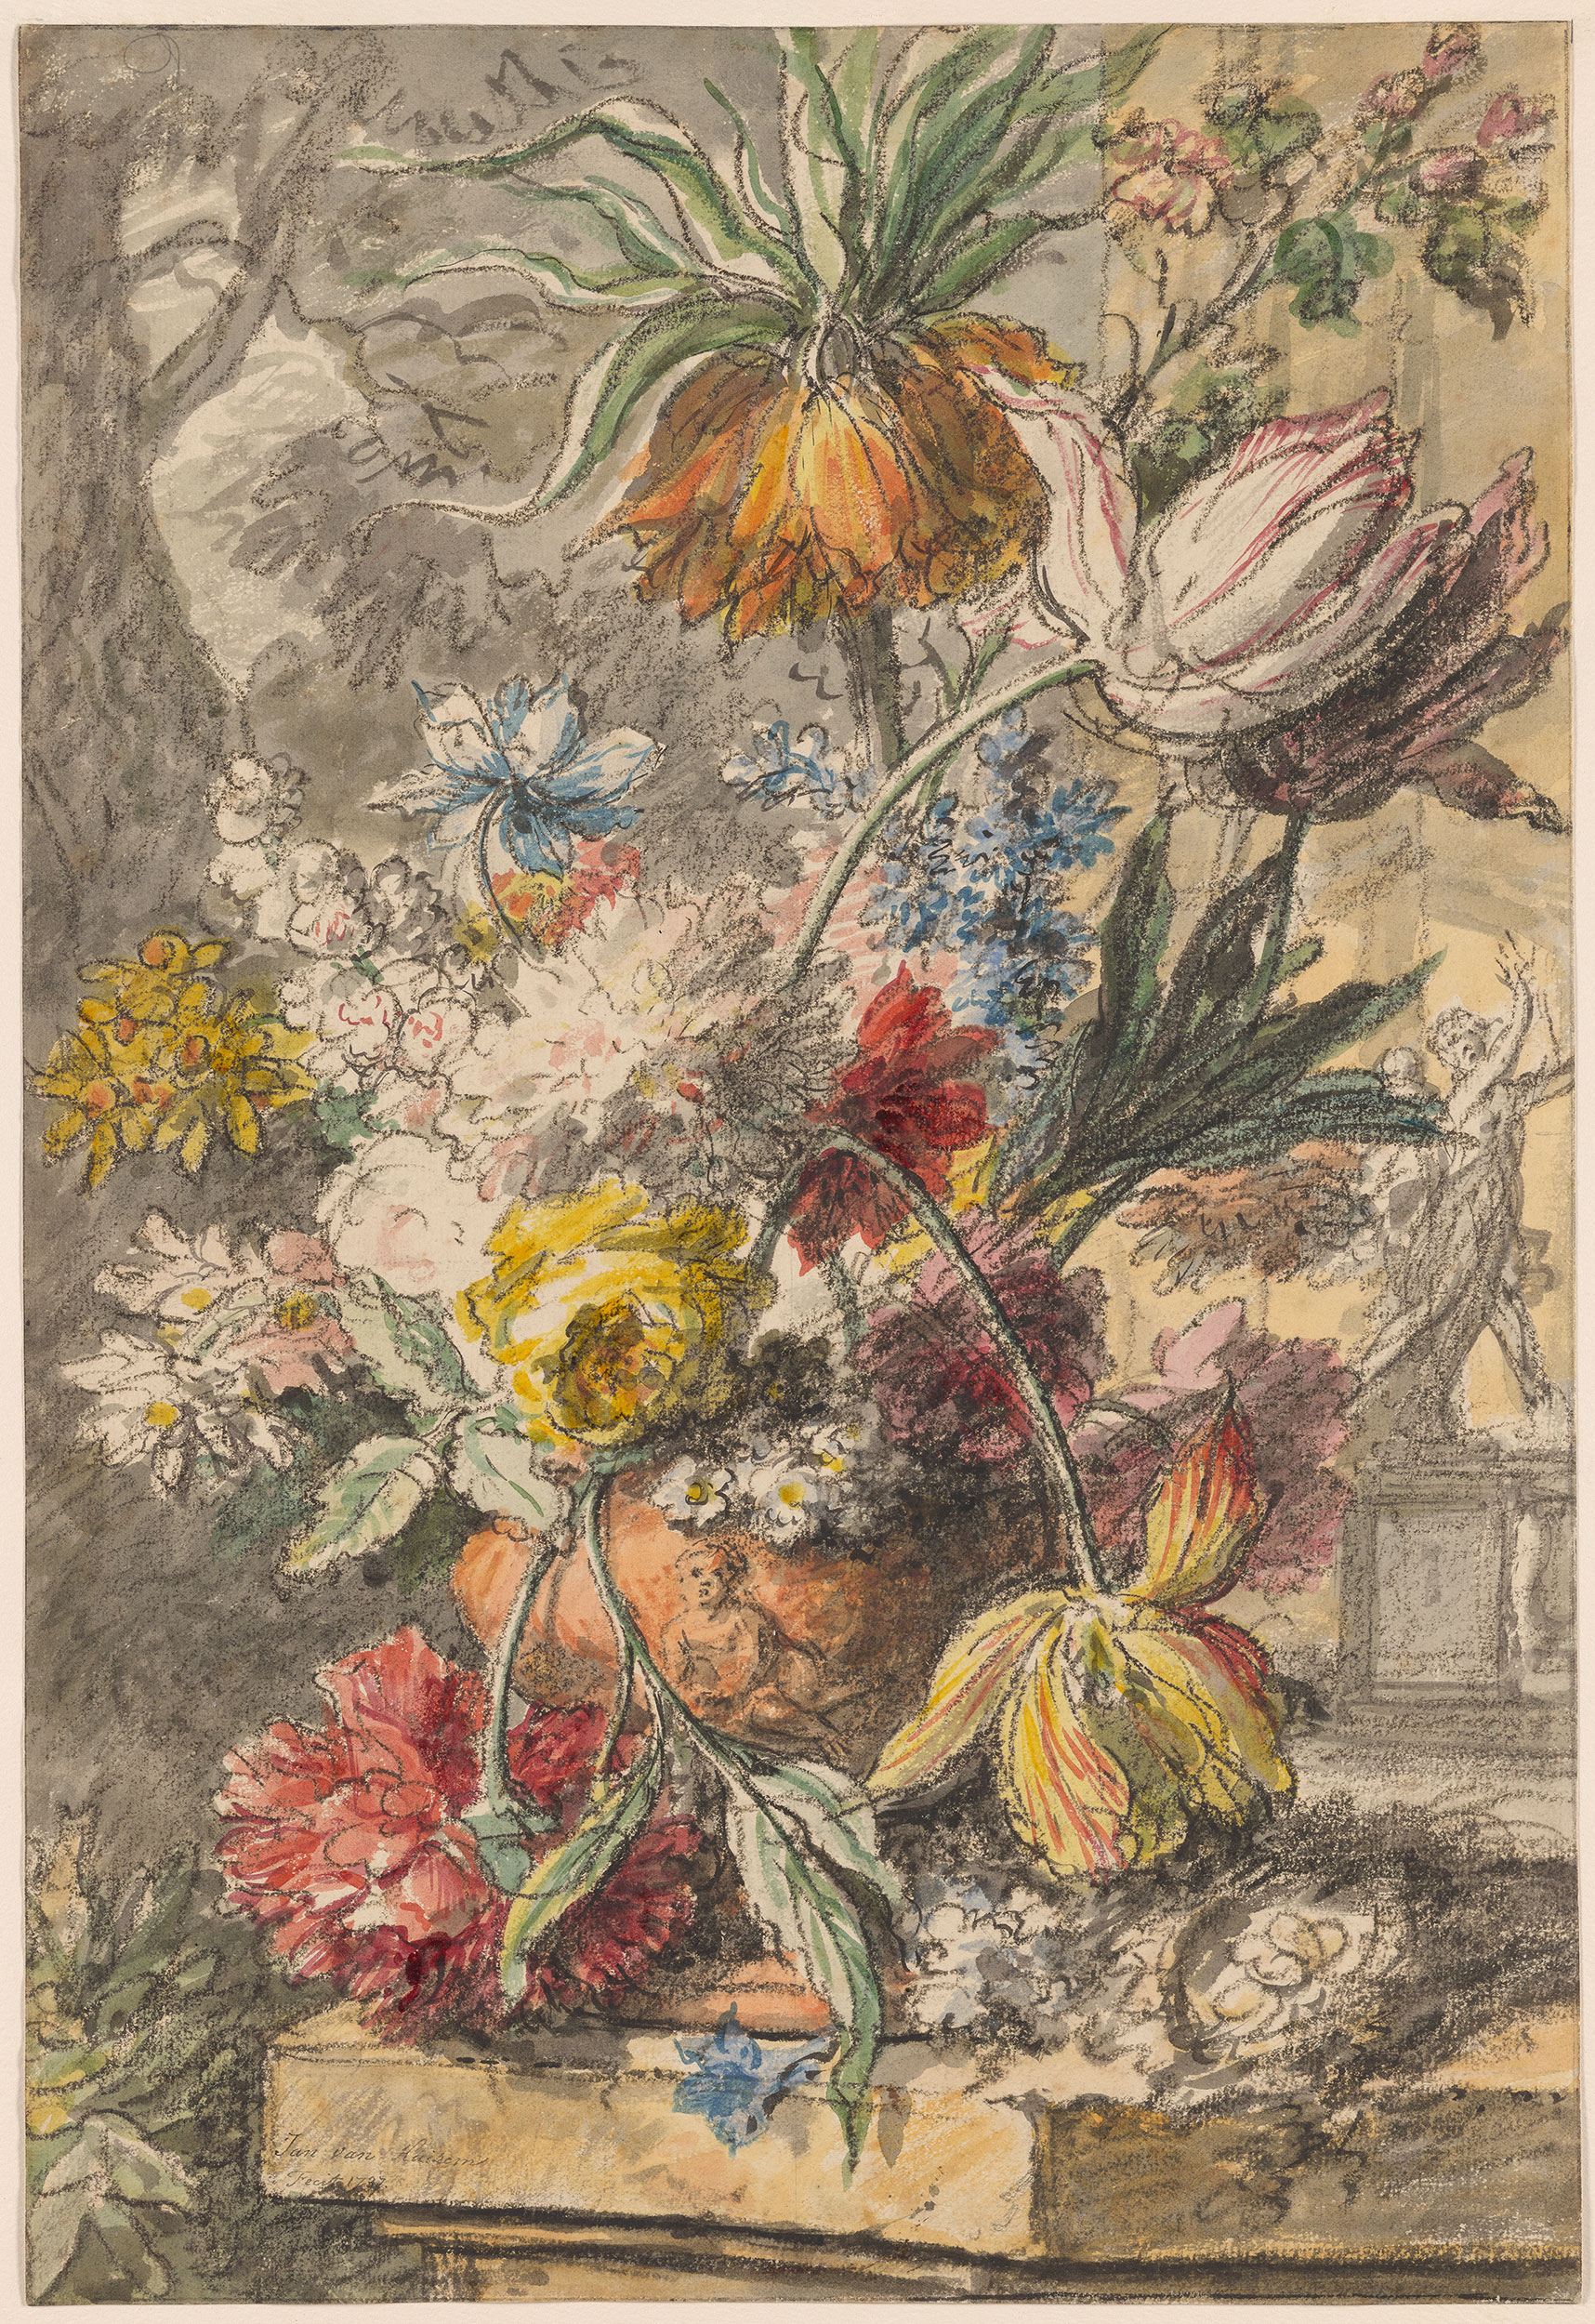 Jan van Huysum  Flowers in an Urn and Birds Nest on a Stone Plinth with a Statue of Apollo